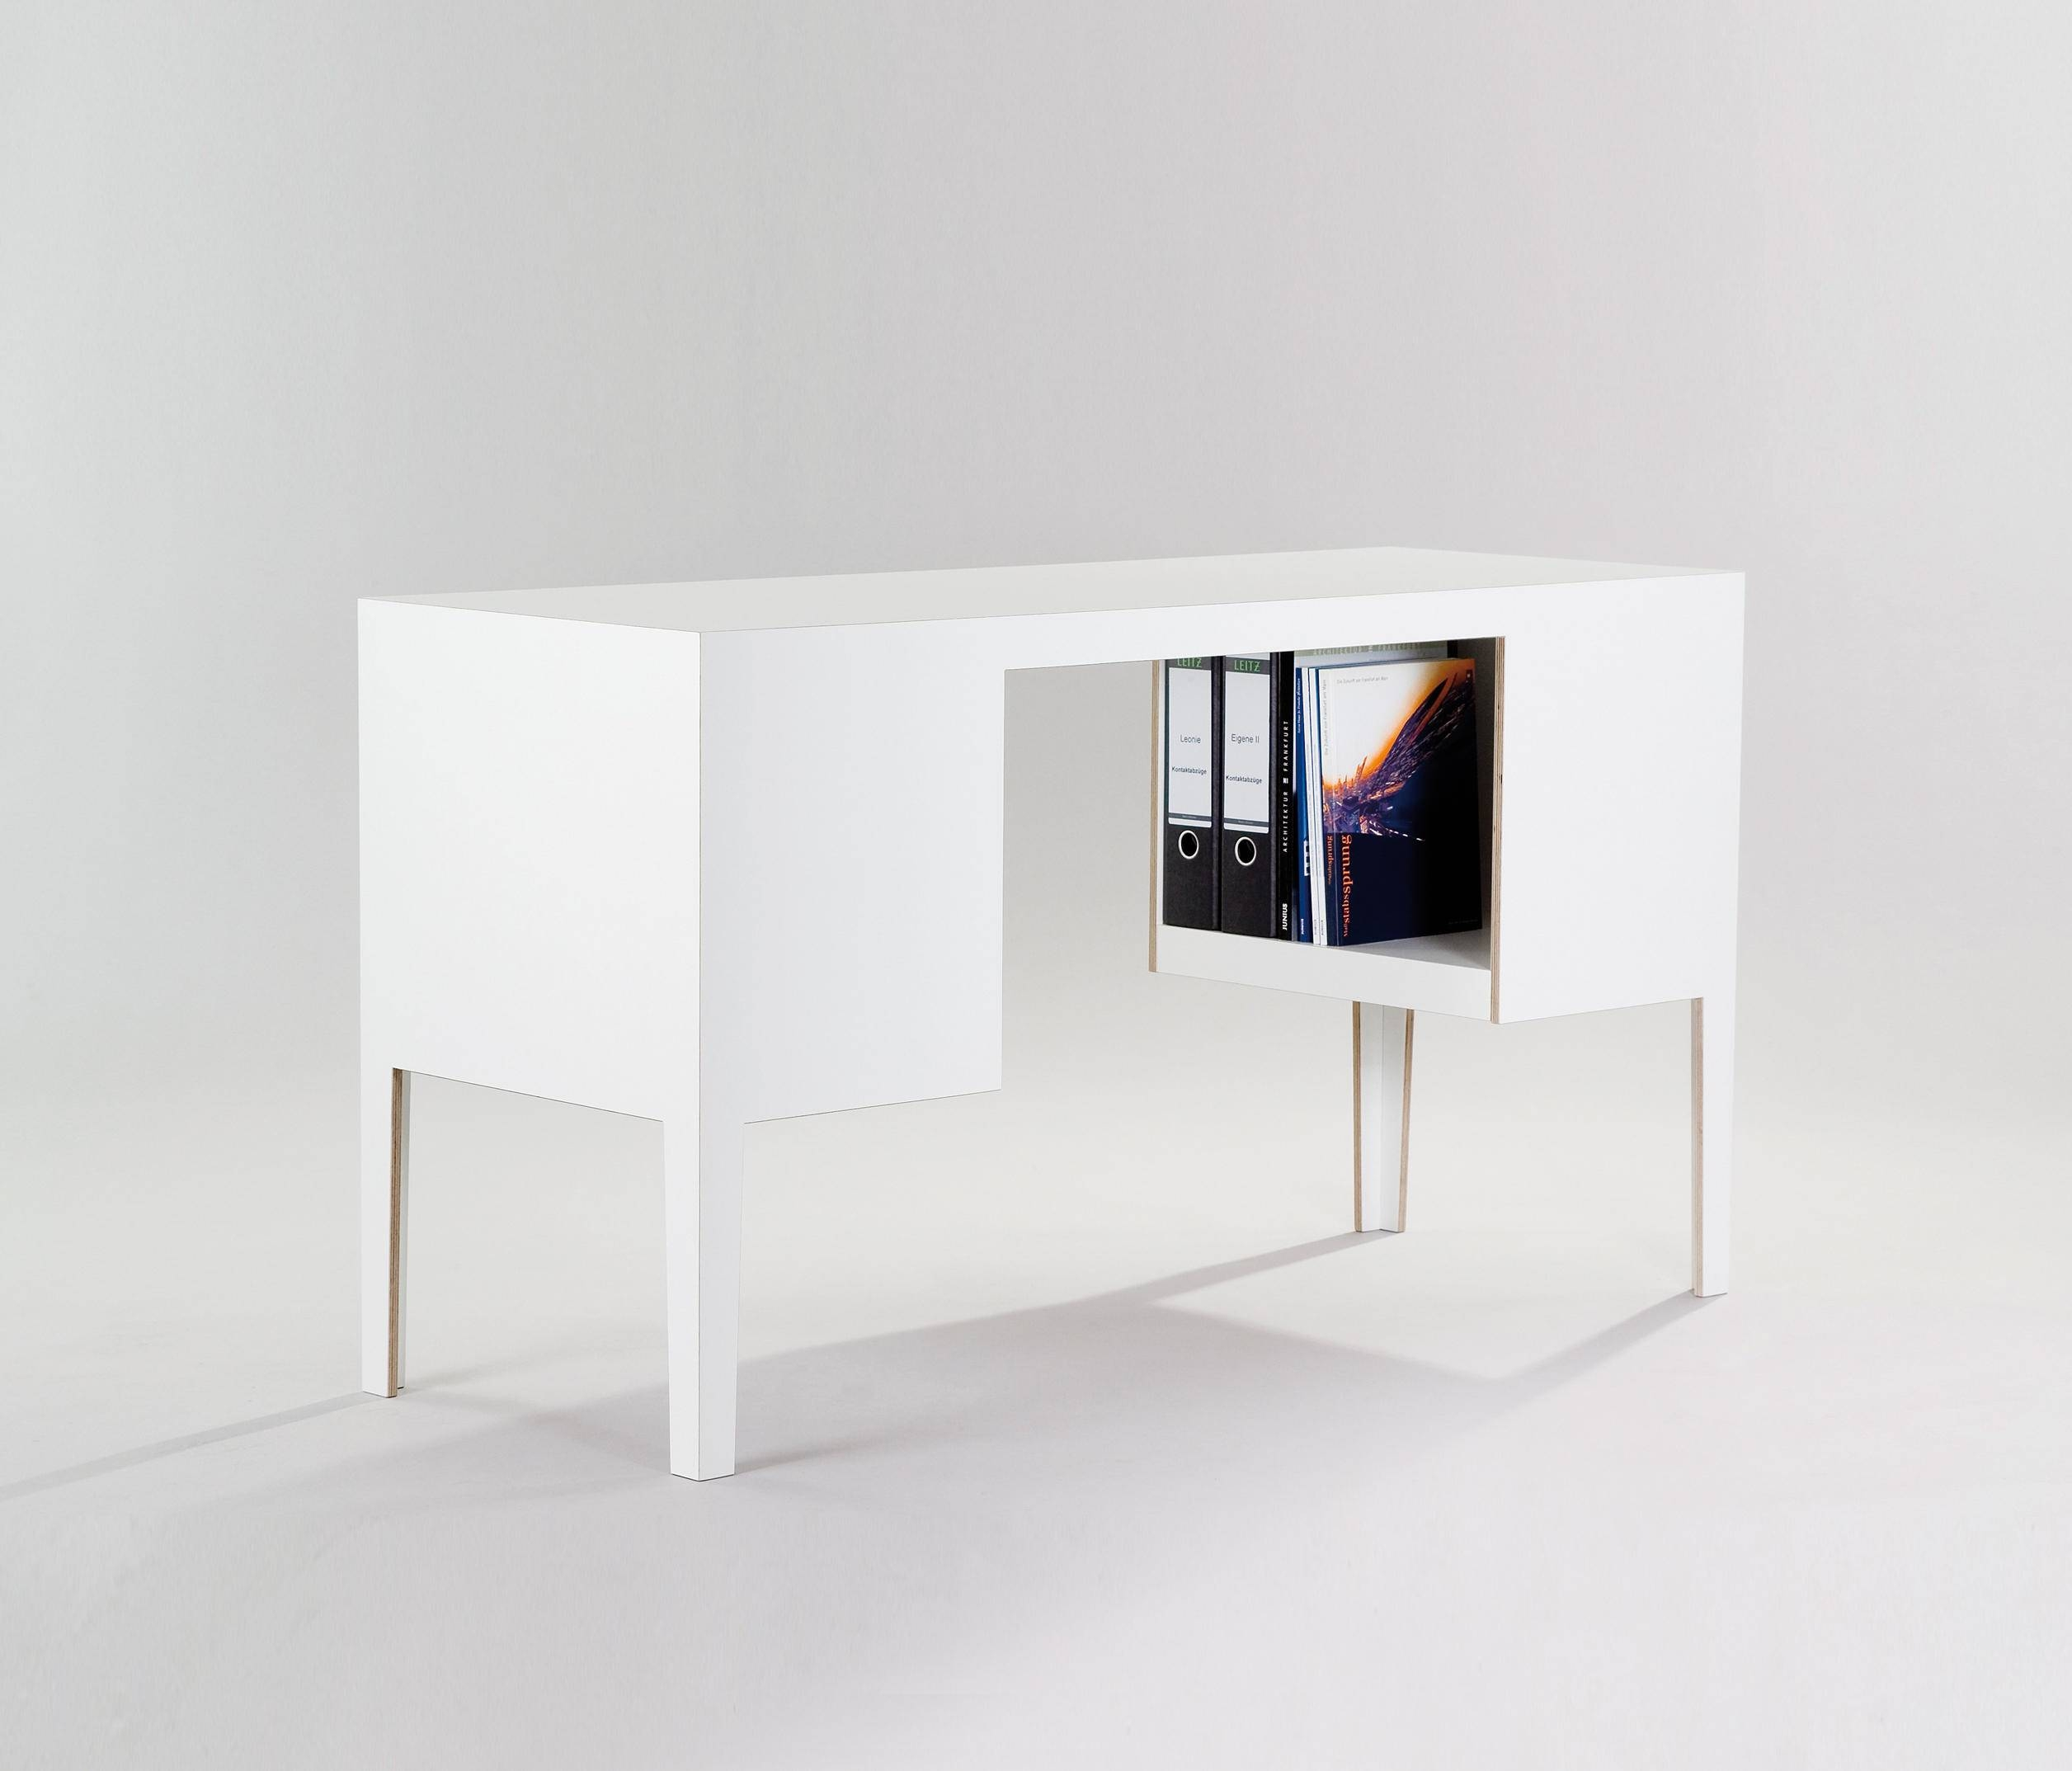 Desk - Sideboards From Morgen | Architonic pertaining to Desk Sideboards (Image 5 of 30)